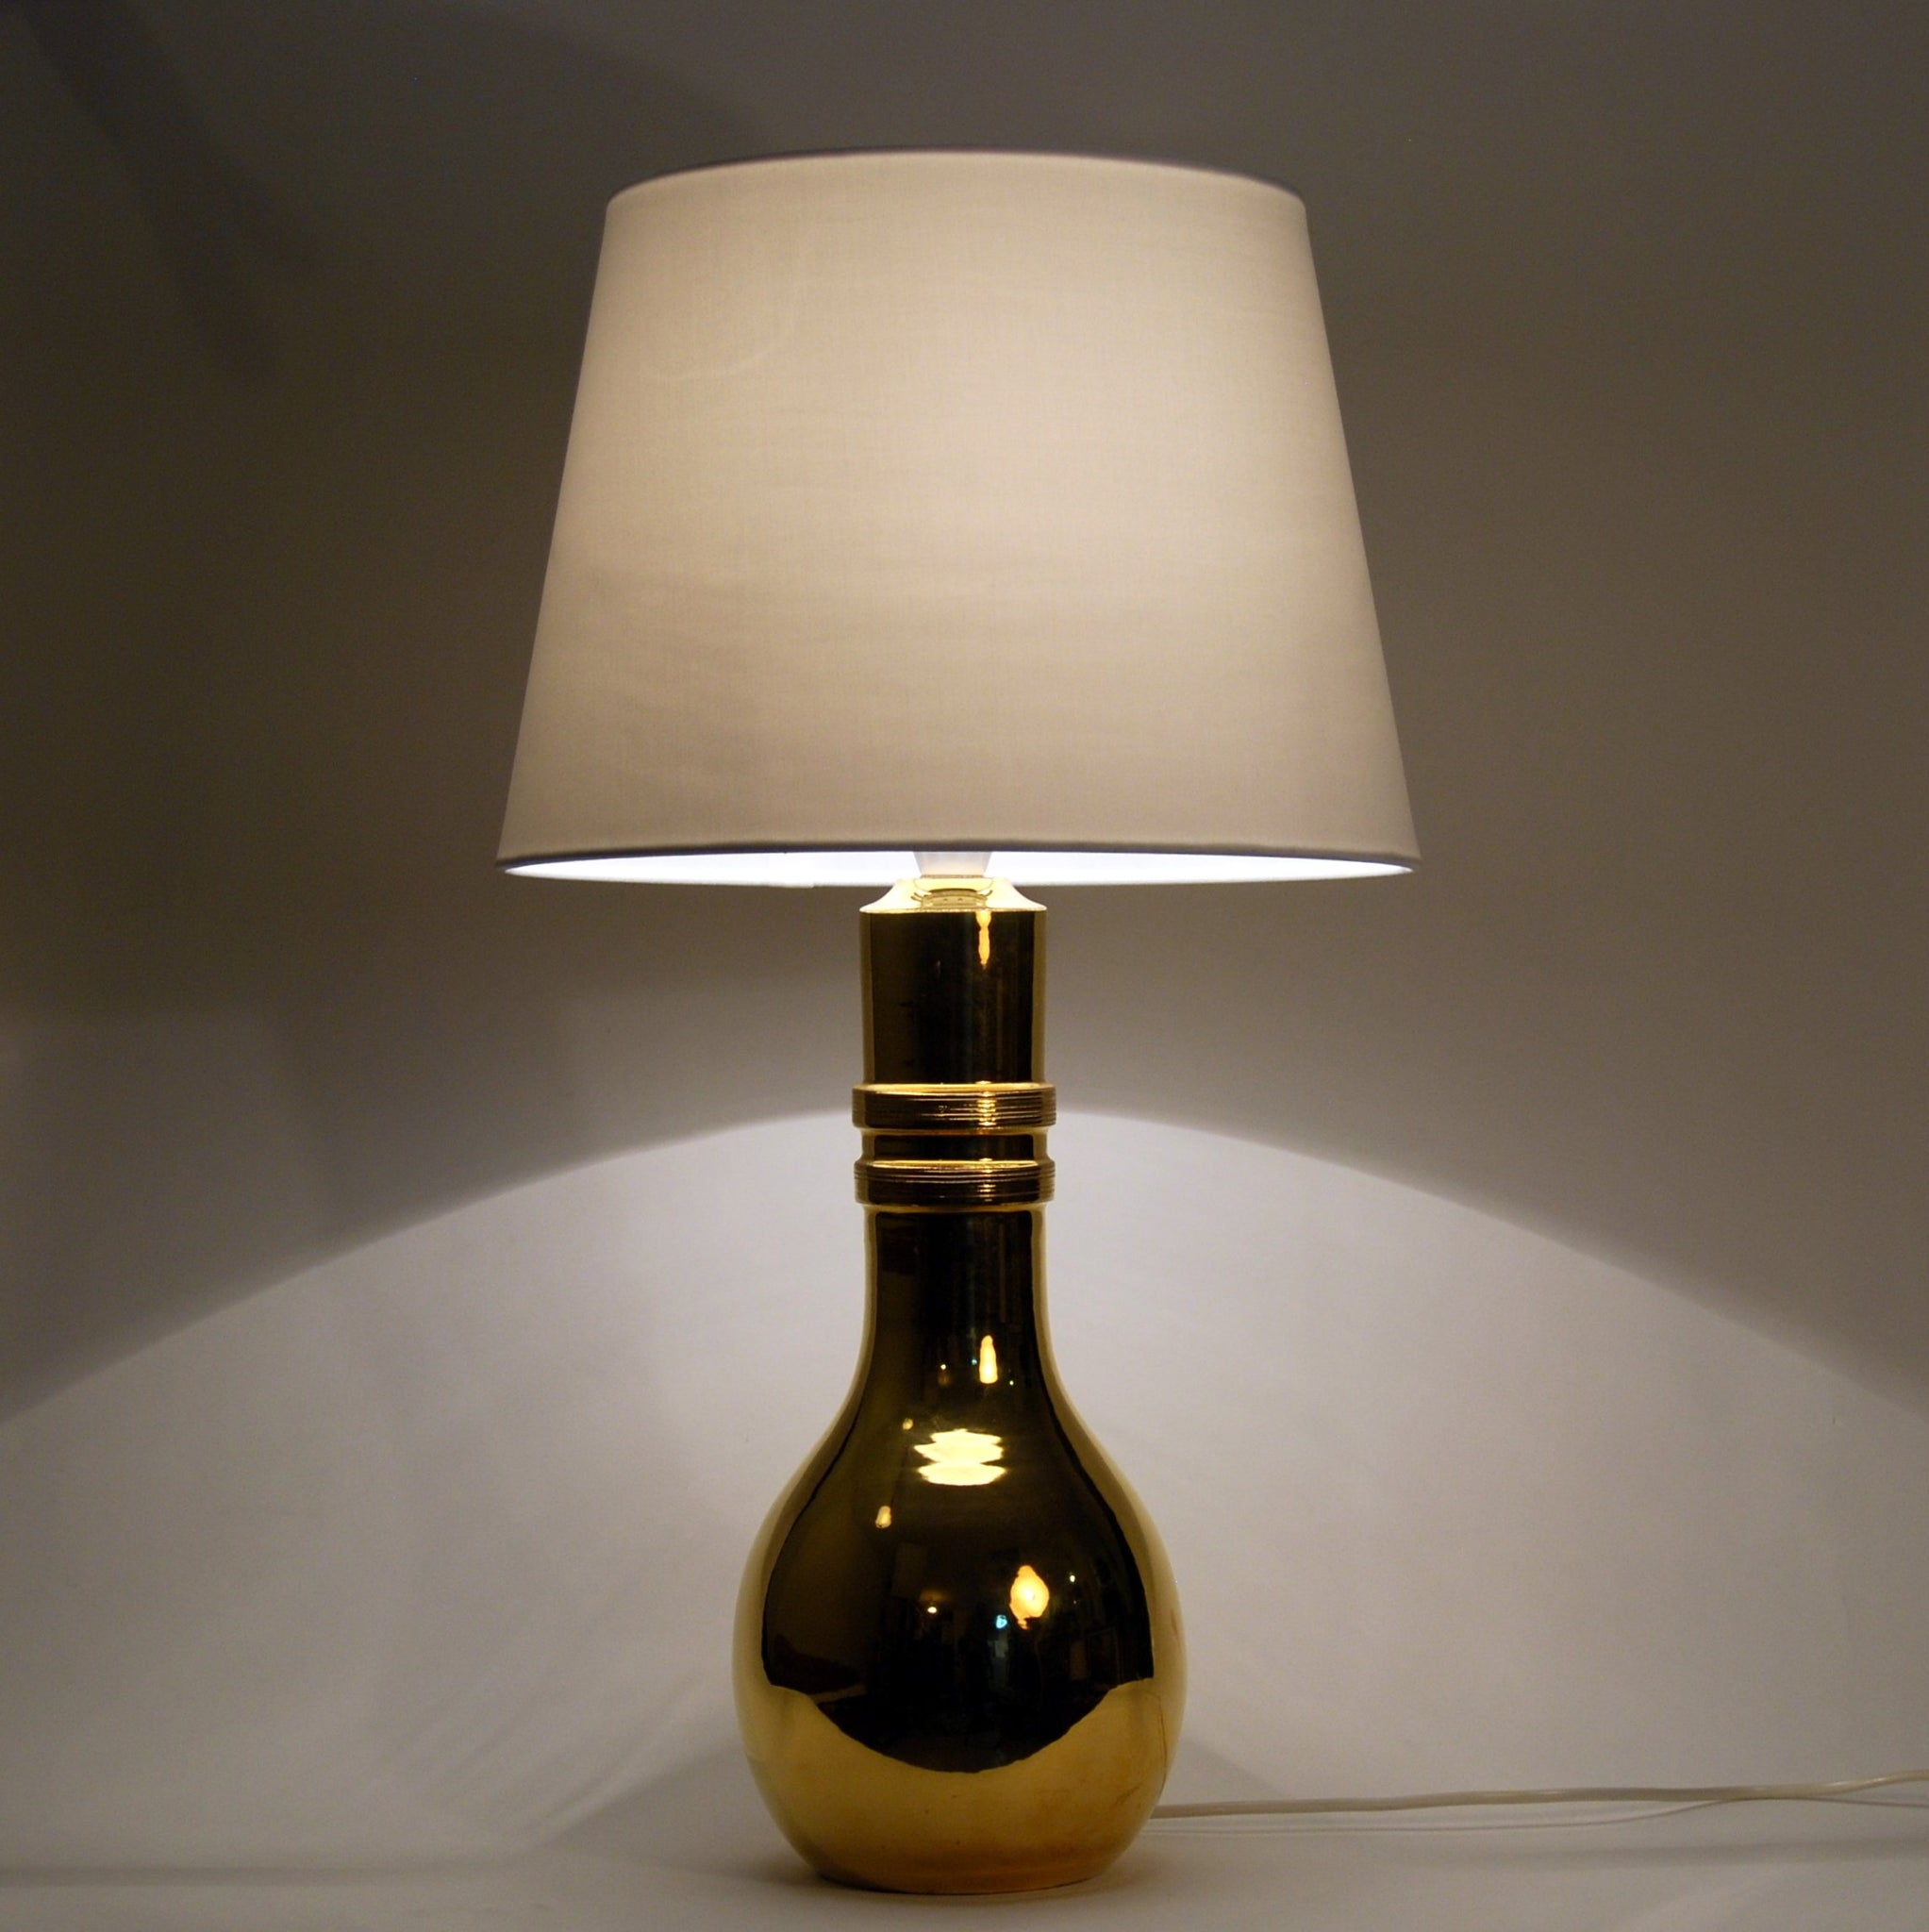 Gilt ceramic table lamp manufactured by Bitossi Italy and imported to Sweden by Miranda AB in the early 1970s